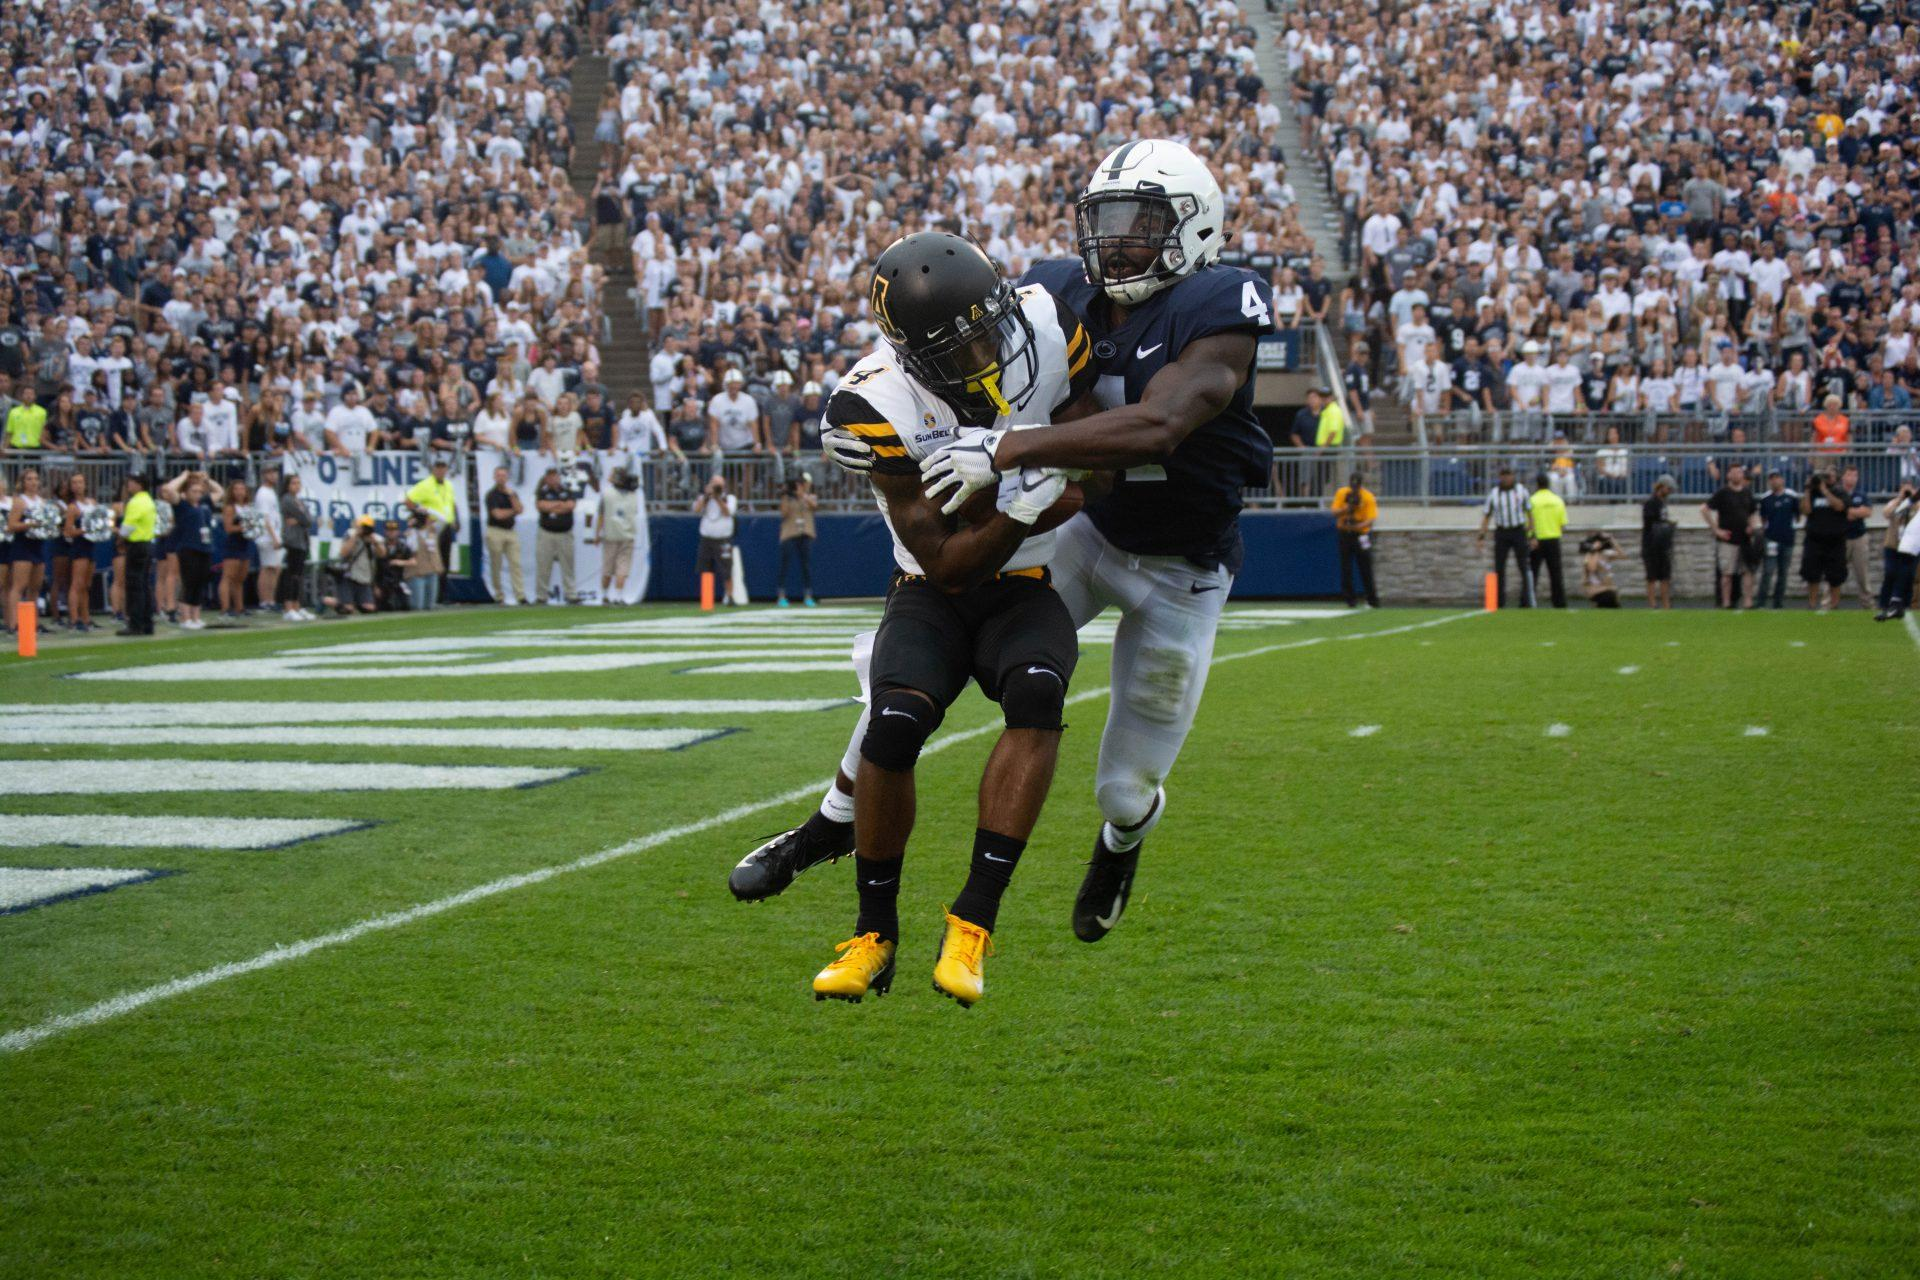 App State v Penn State Rapid Reactions